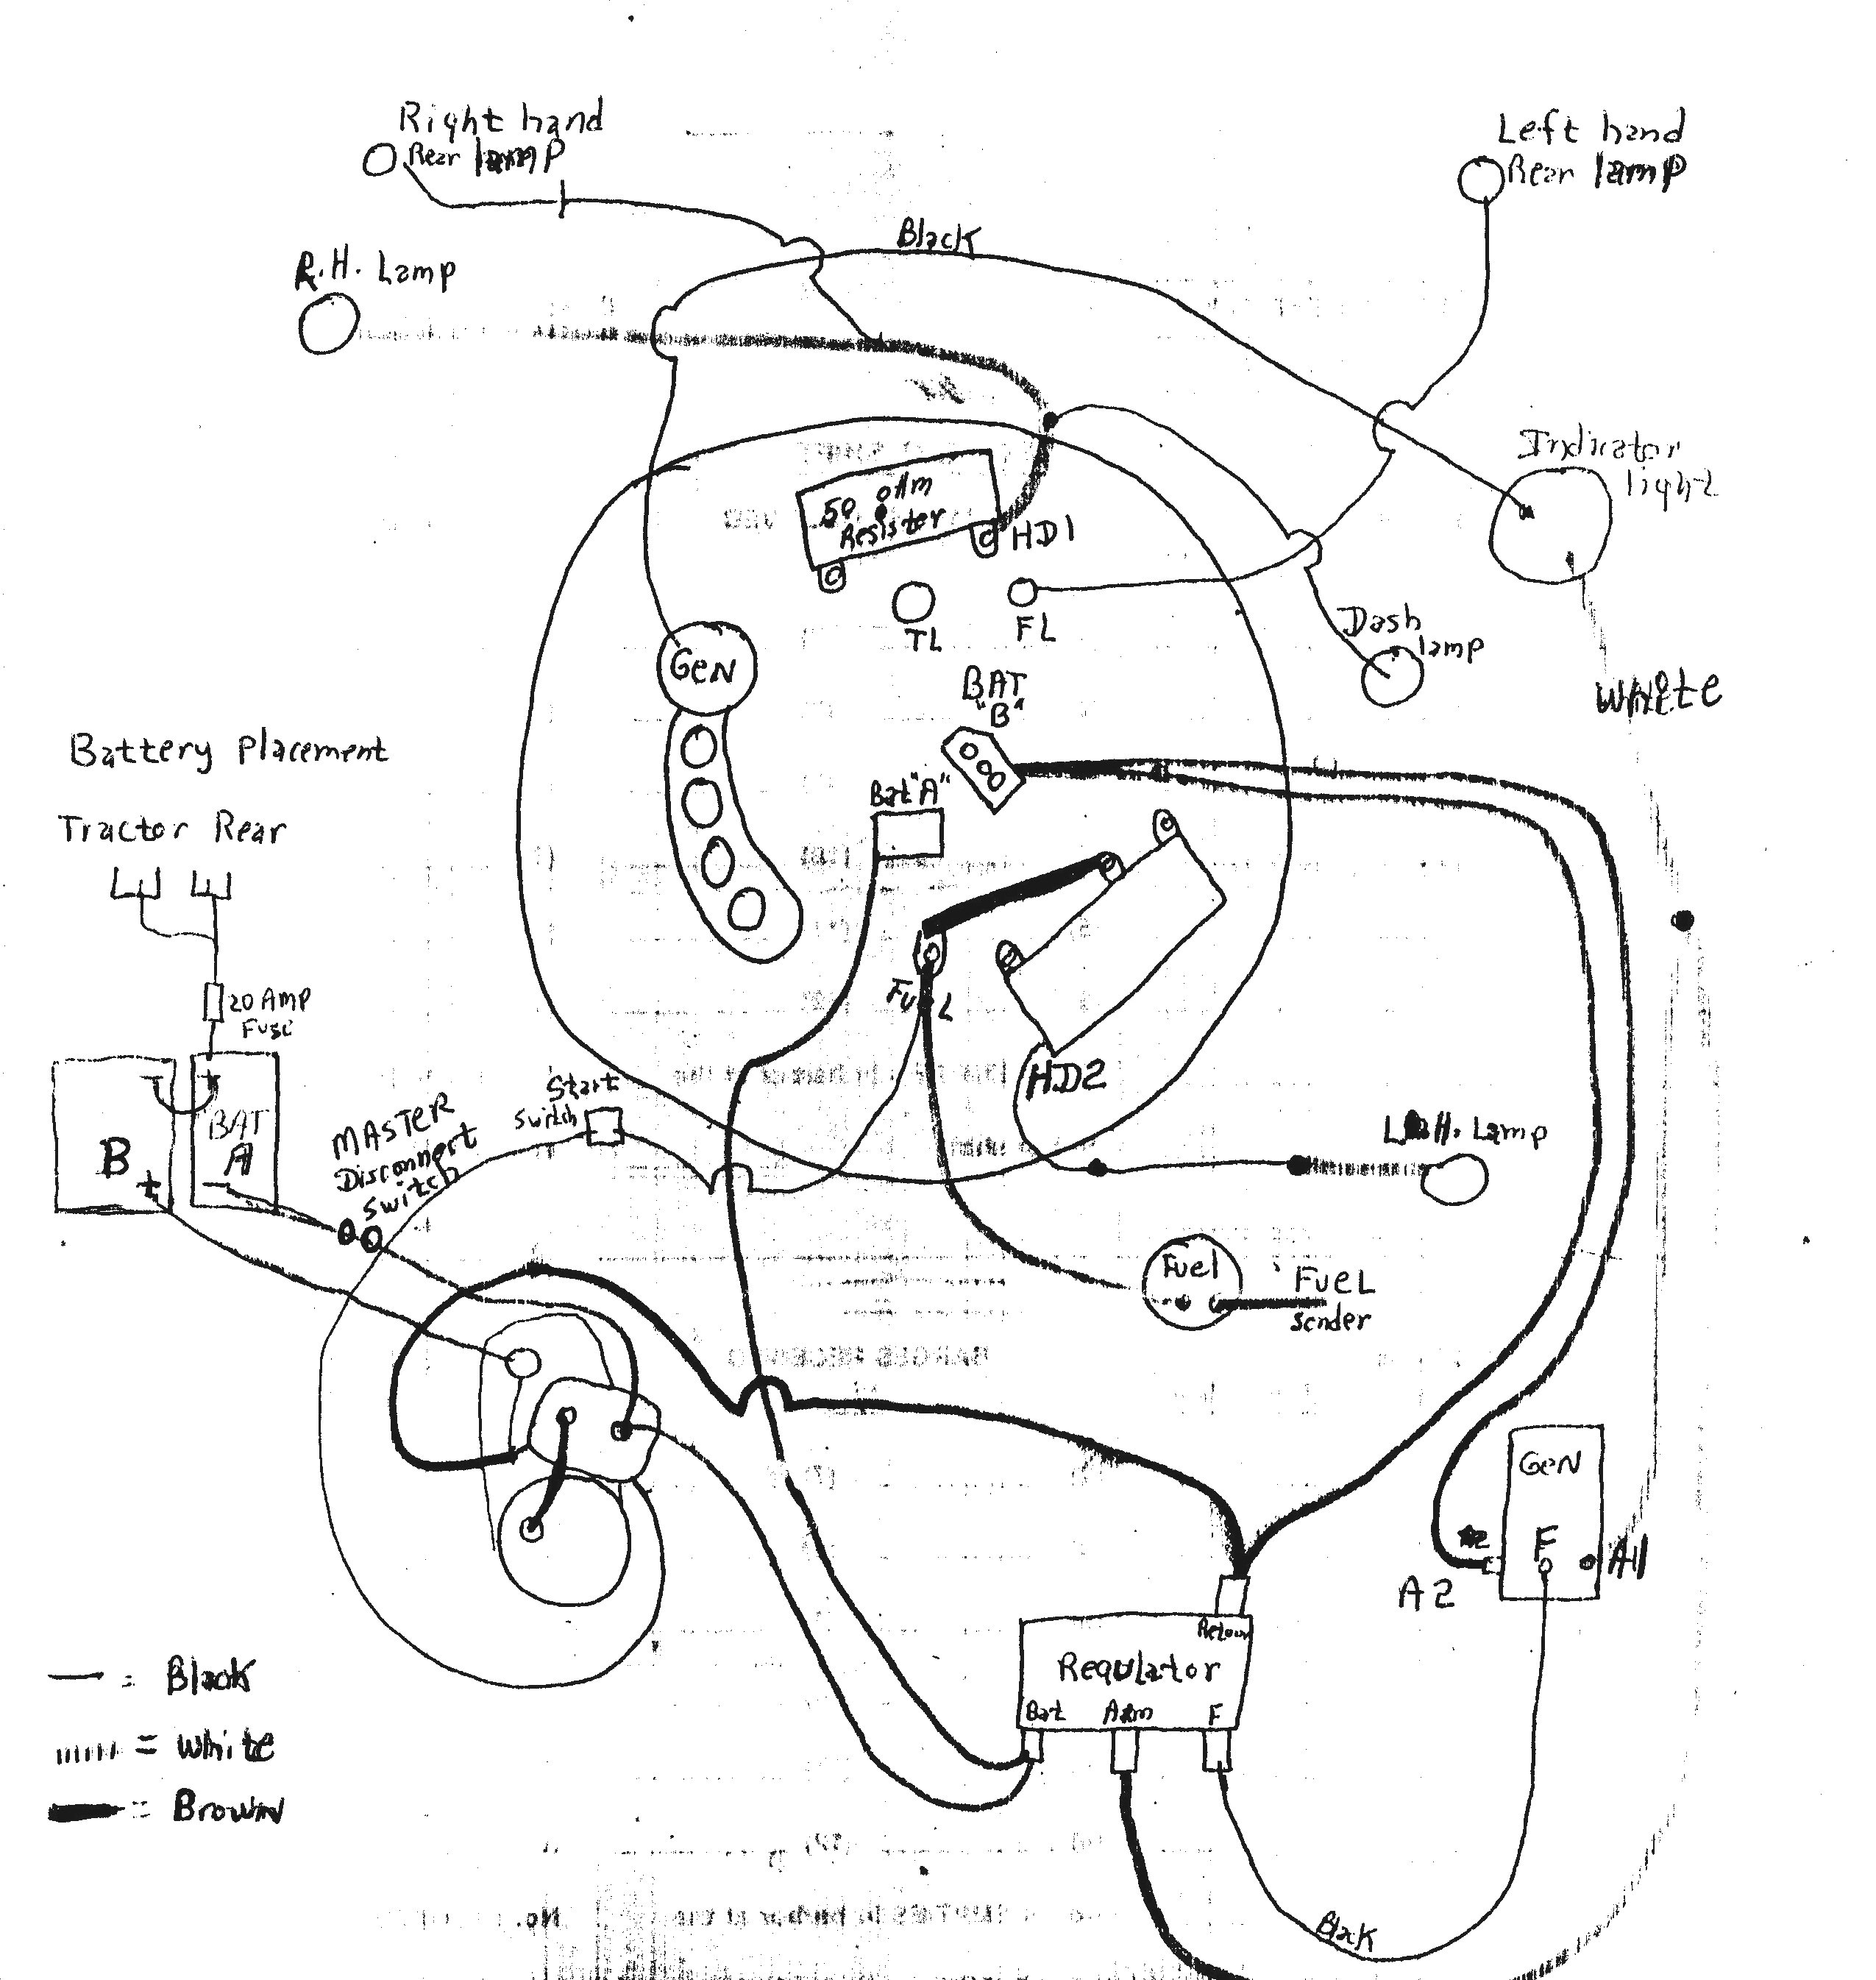 Garden Shed Wiring Diagram besides Starter Crank Fuel Shutoff Solenoid Wiring furthermore 7 Way Trailer Wiring Diagram besides Ford Pertronix Electronic Ignition Wiring Diagram furthermore Wiring Diagram For Allis Chalmers C Tractor. on 12 volt ford tractor wiring diagram